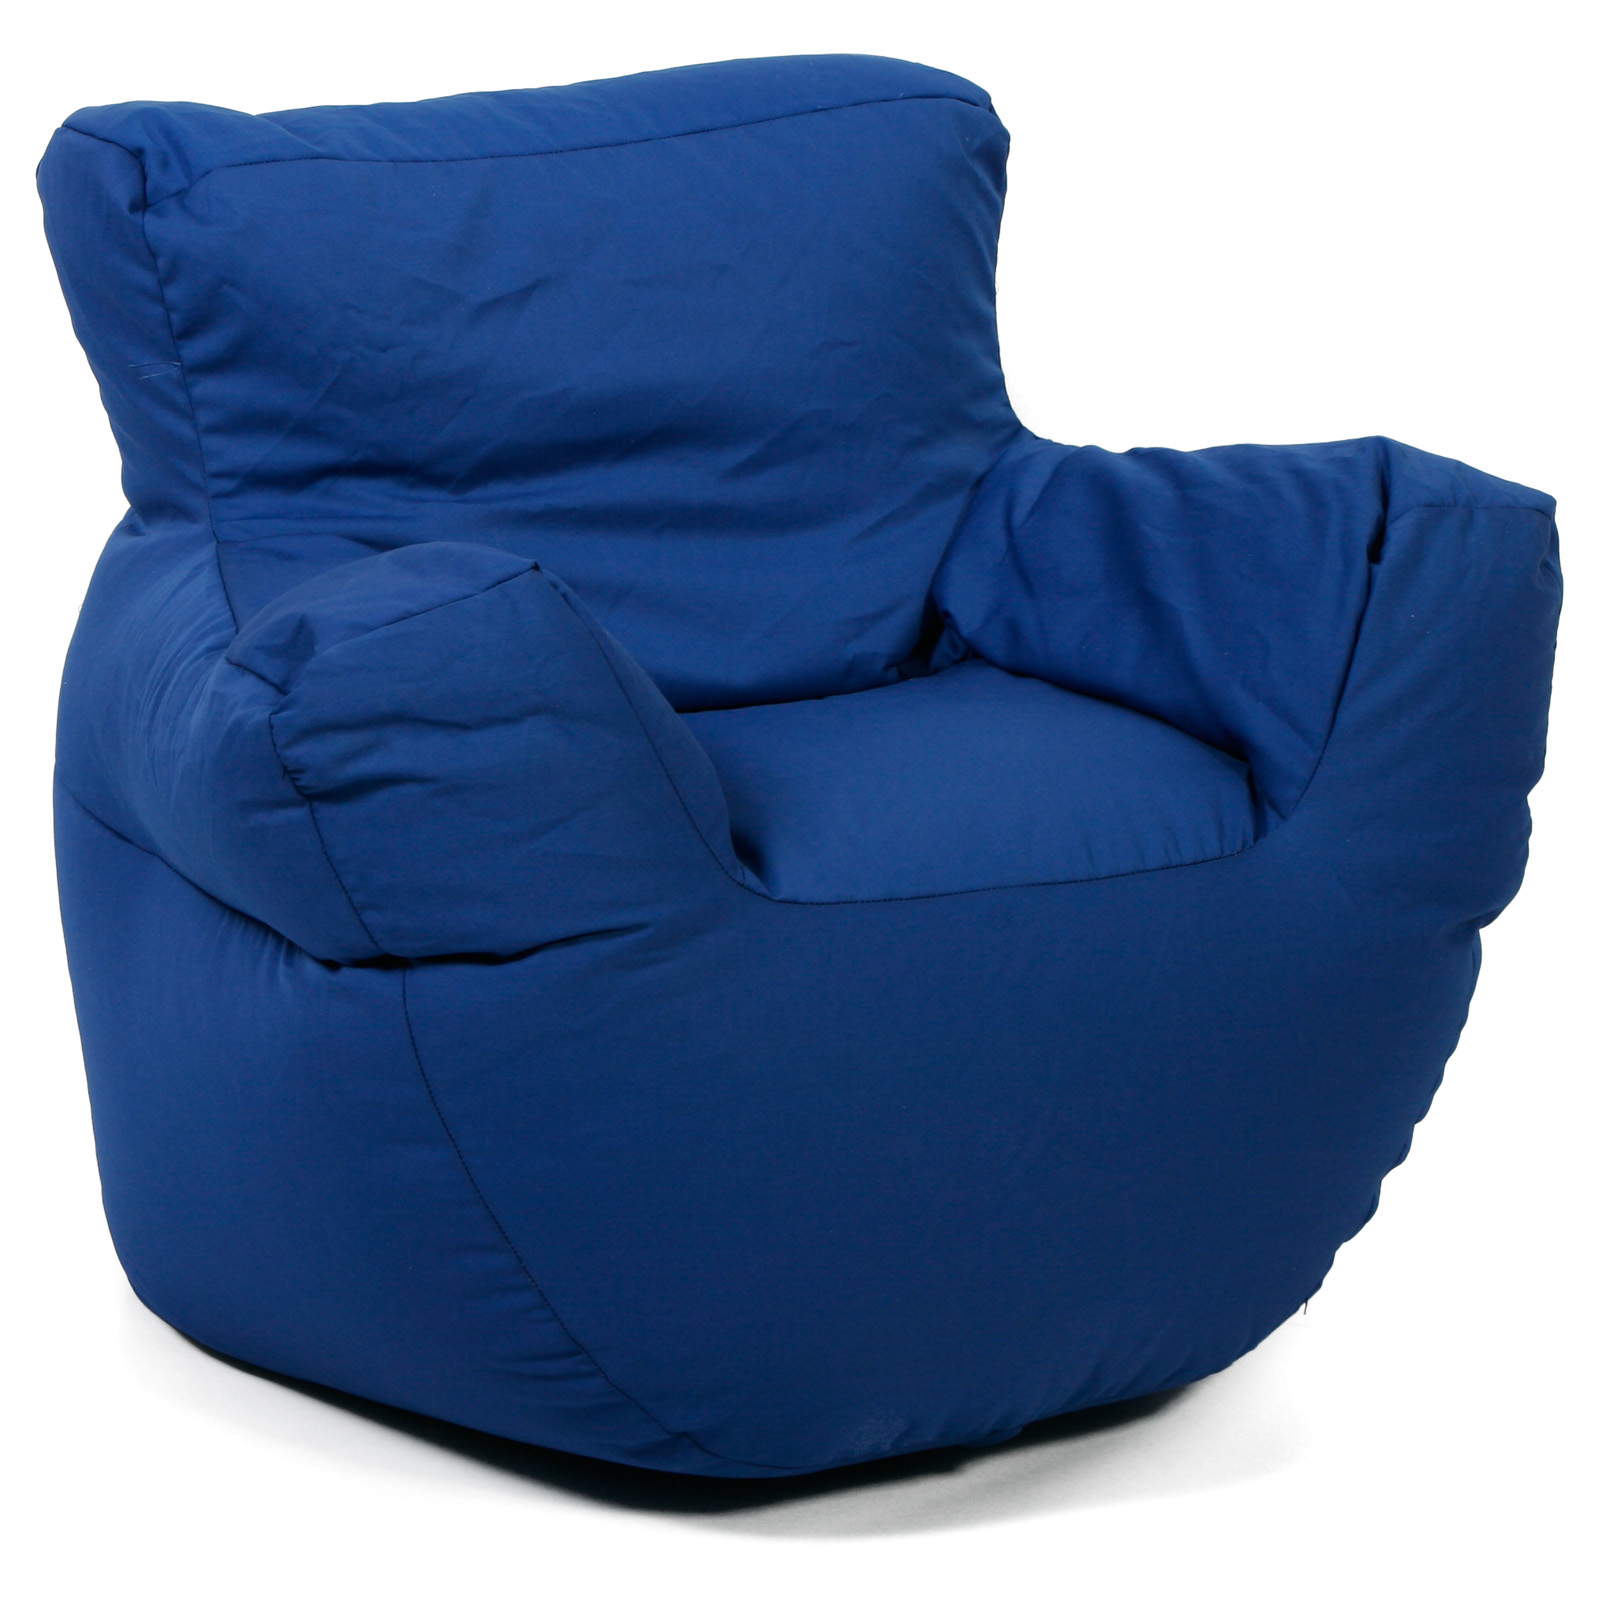 Stool Chair Walmart Adult Bean Bag Arm Chair at Hayneedle